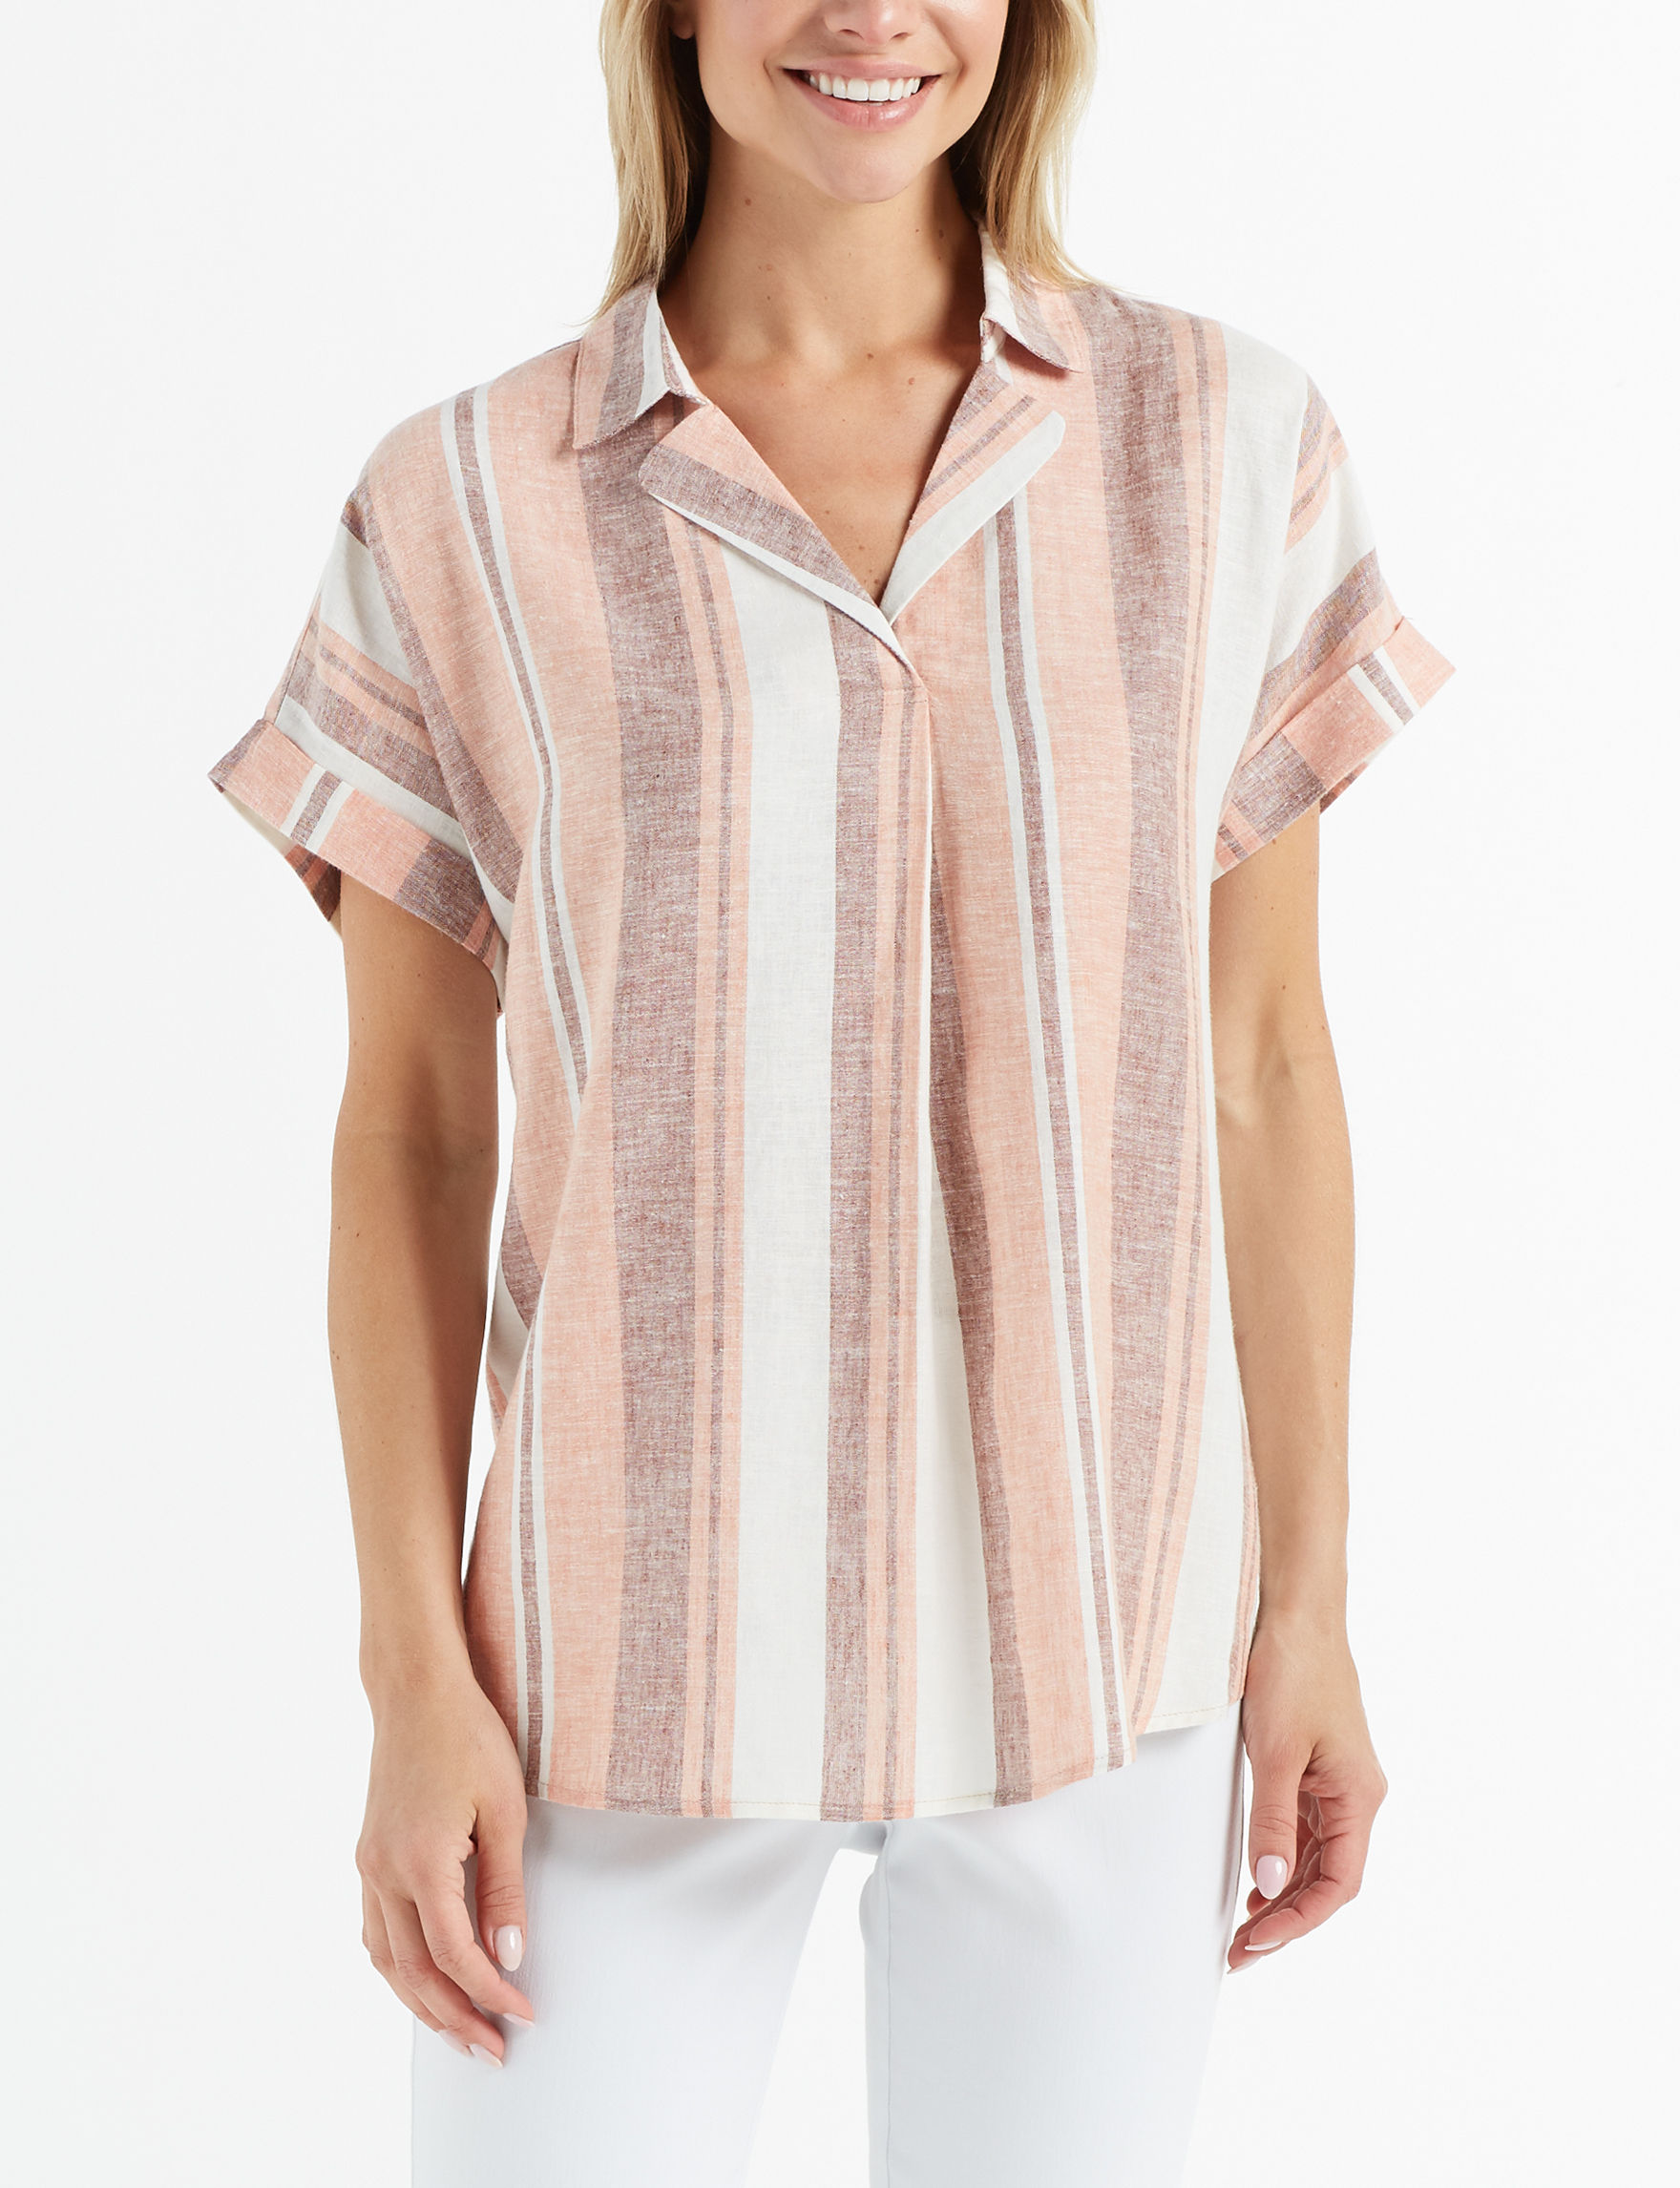 Fred David Beige Shirts & Blouses